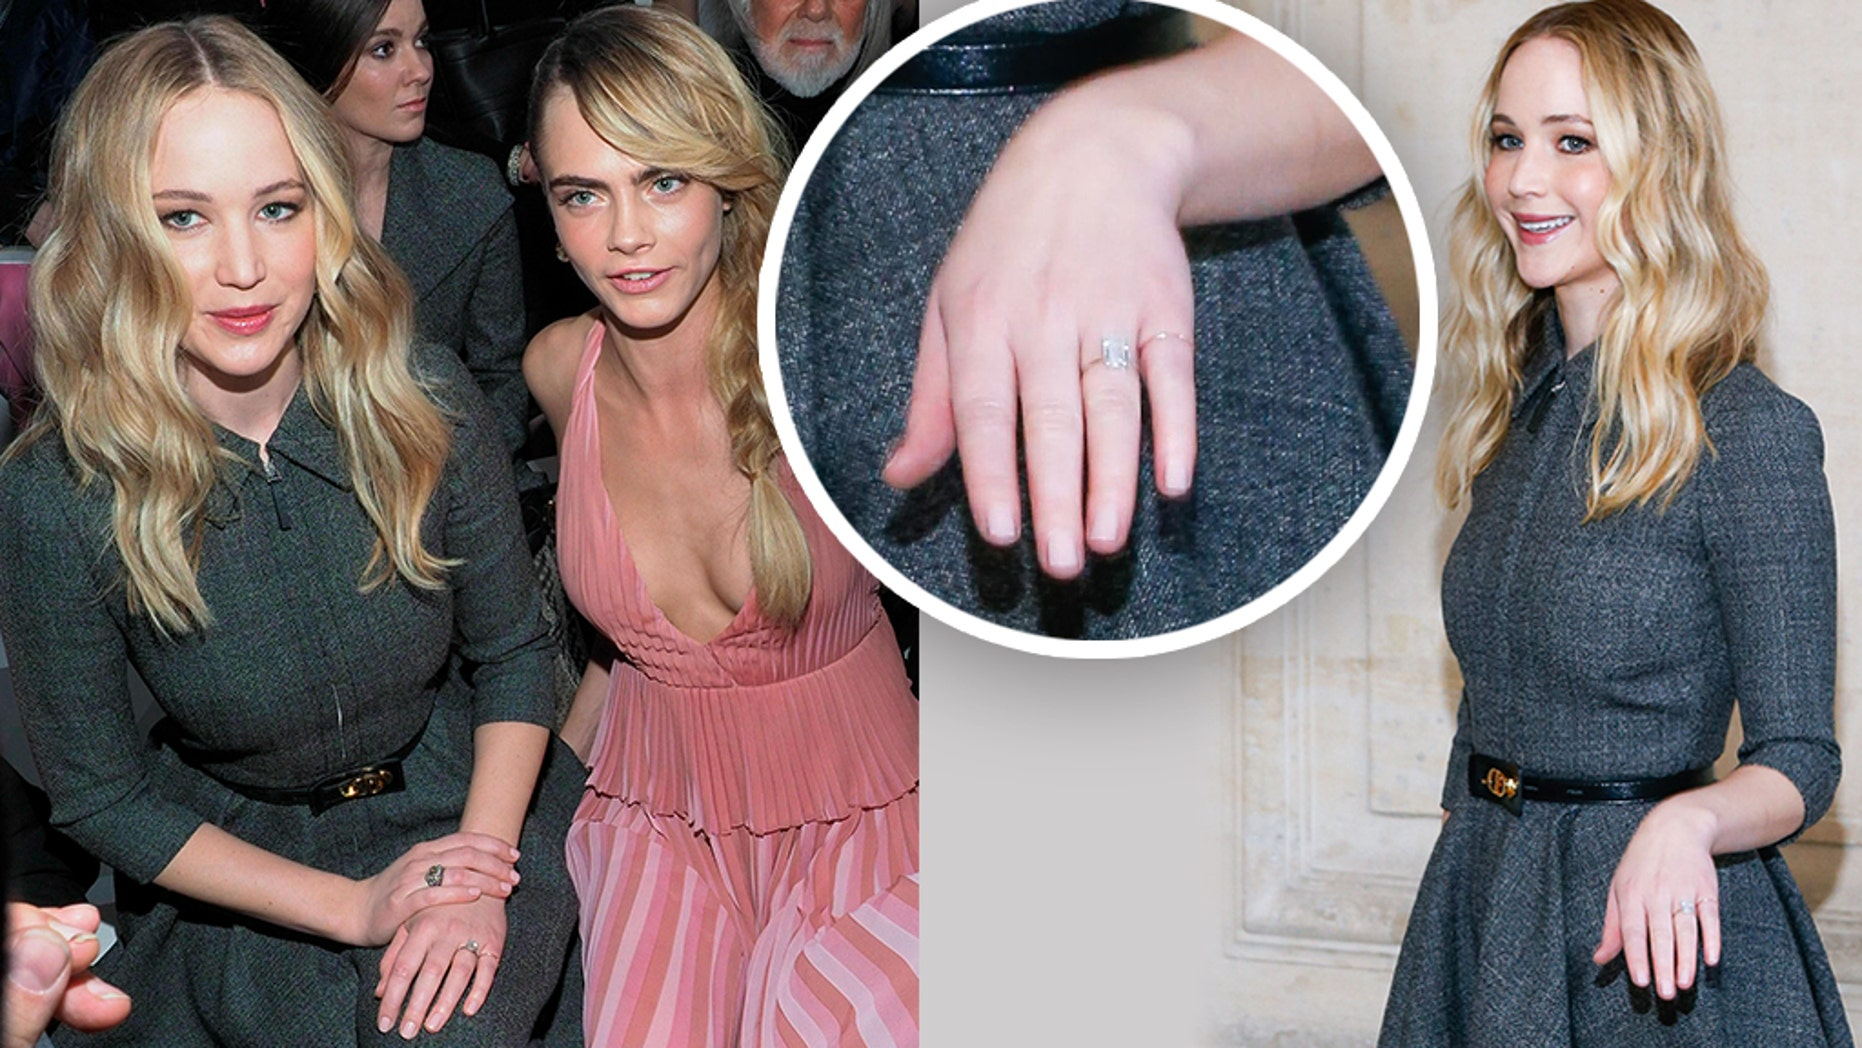 Jennifer Lawrence Shows Off Sizable Engagement Ring At Paris Fashion